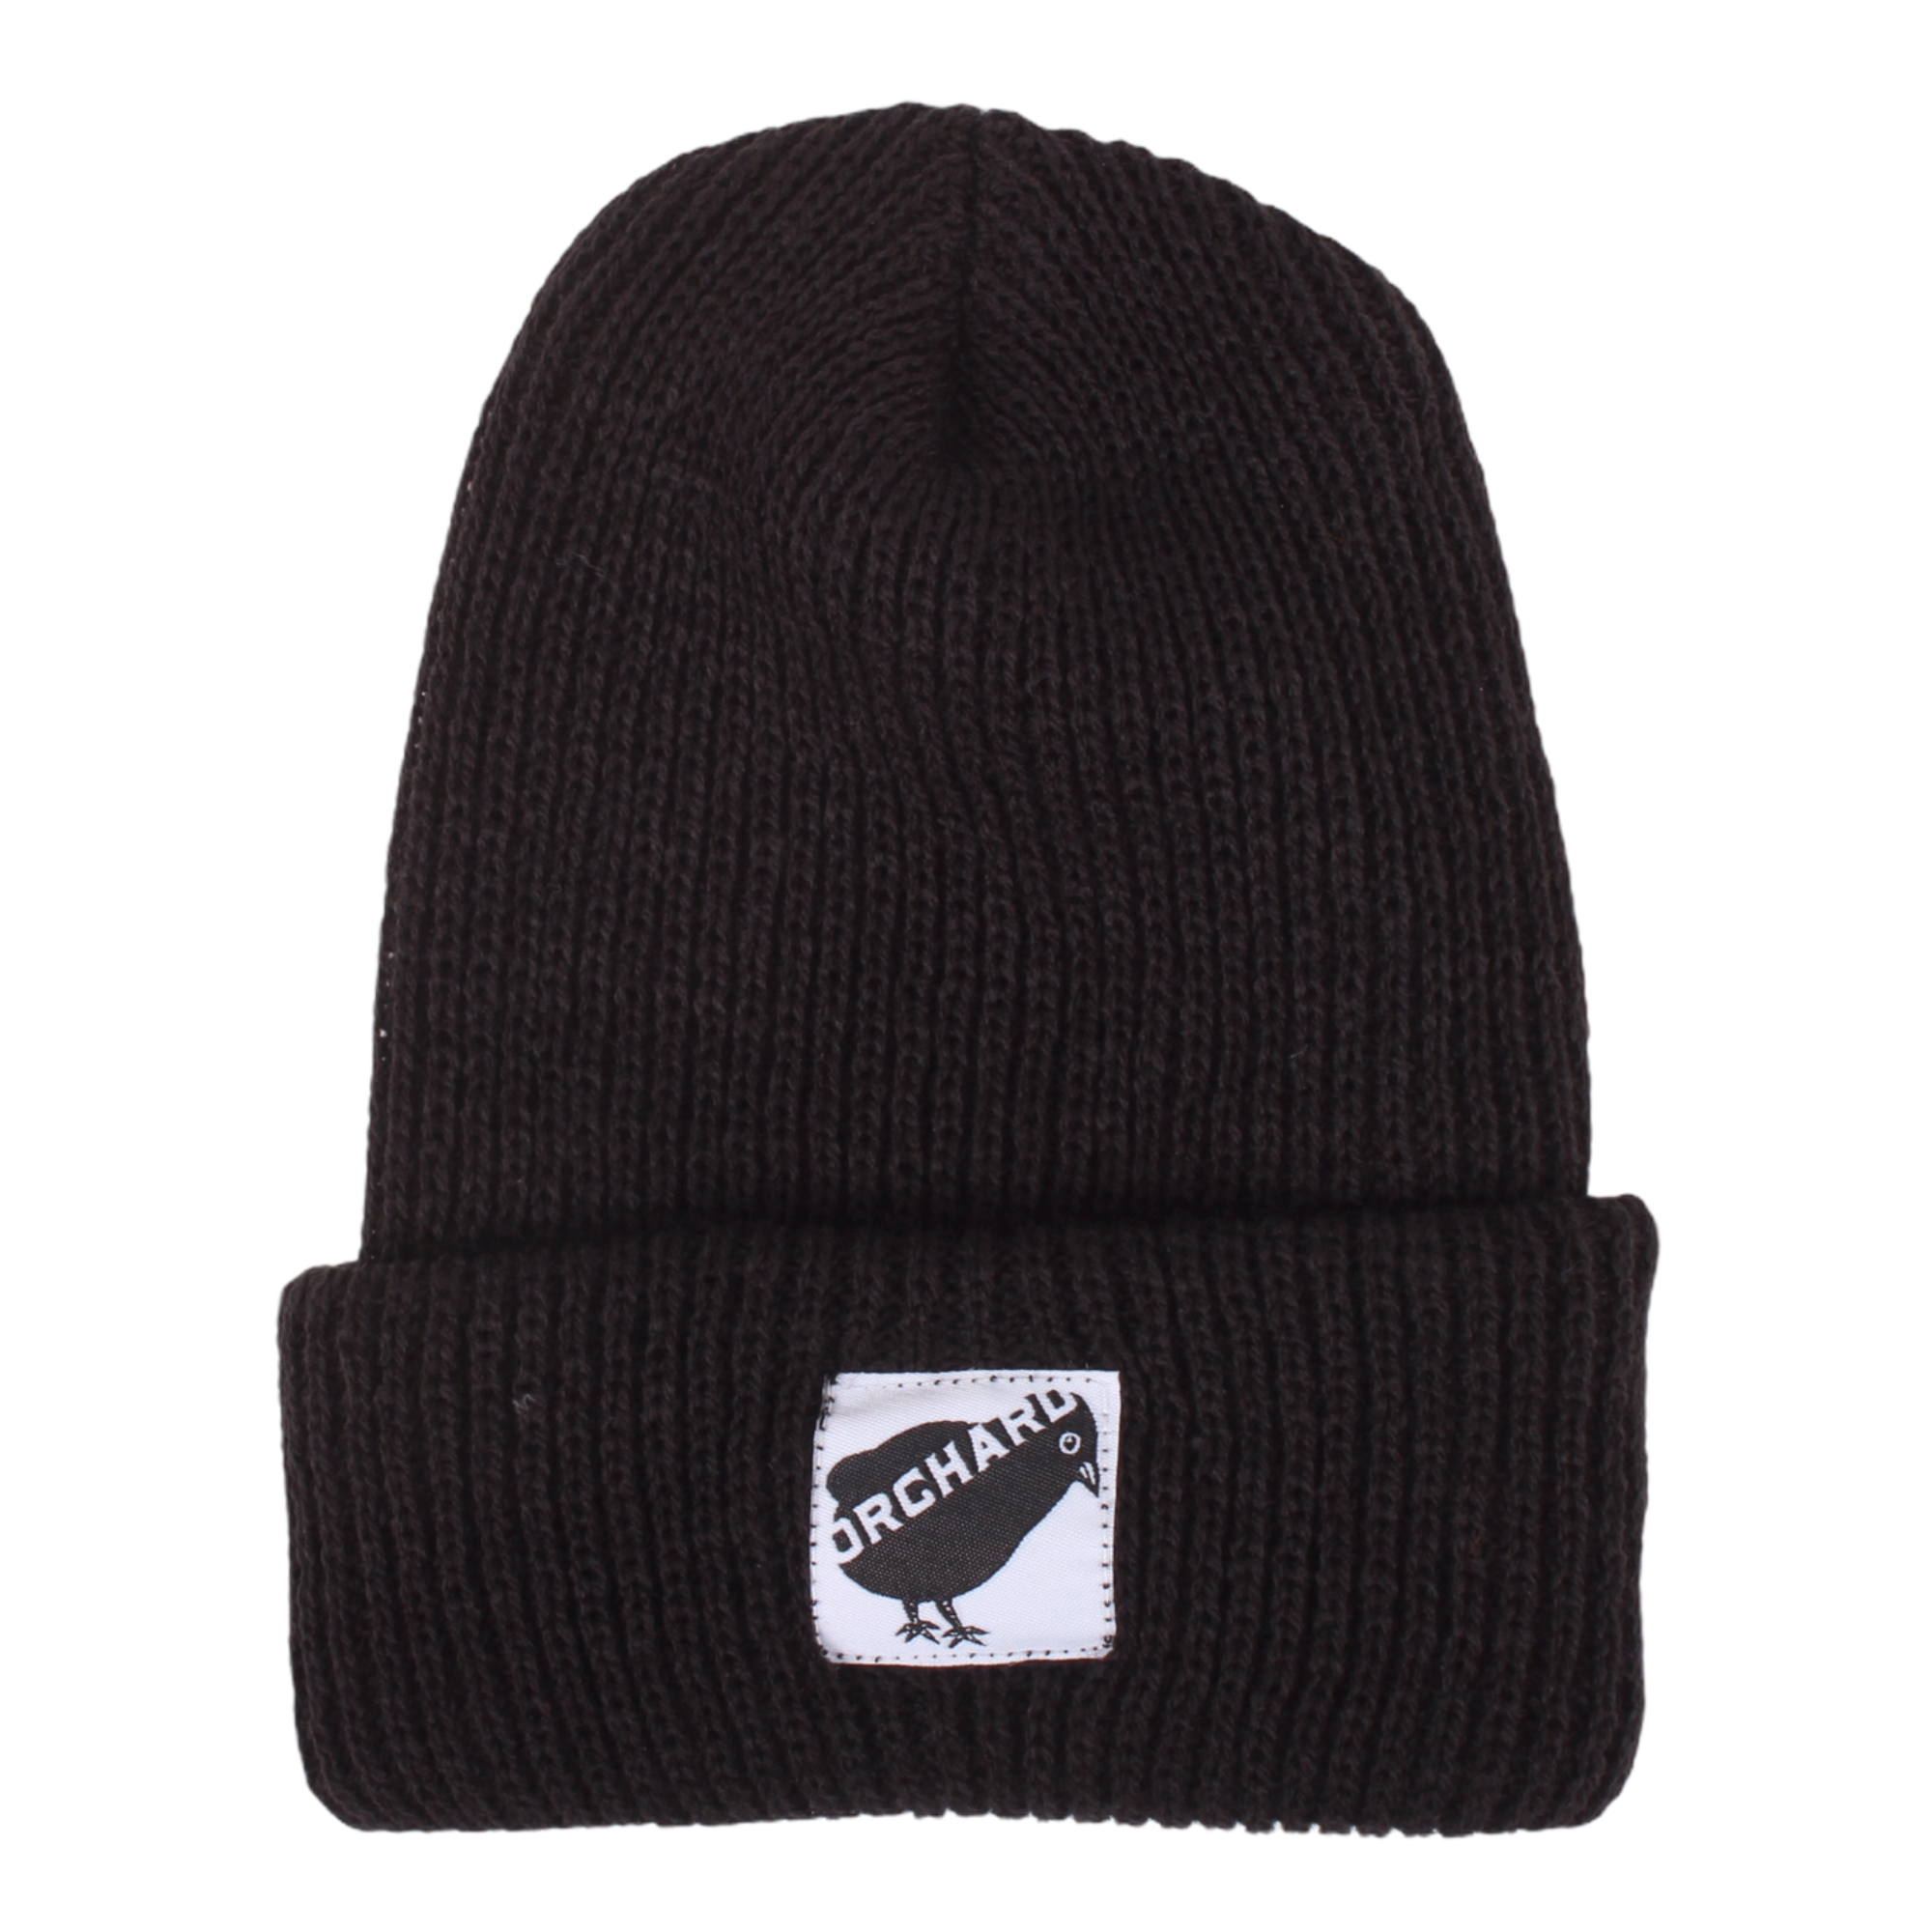 Orchard Black Bird Watch Beanie Black